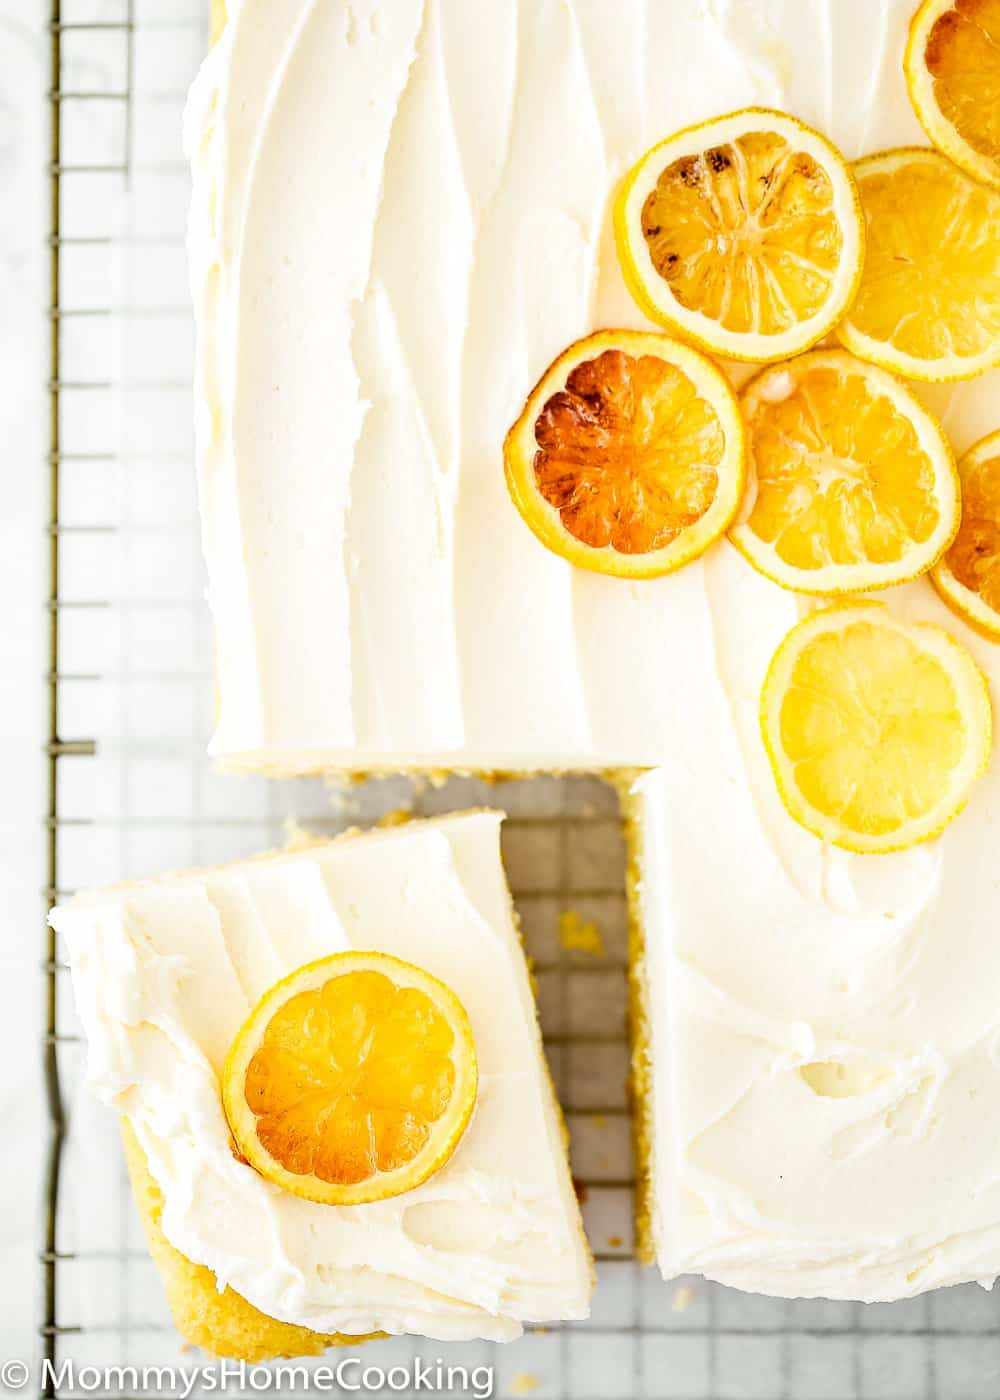 Eggless Lemon Cake over a cooling rack with candied lemon slices